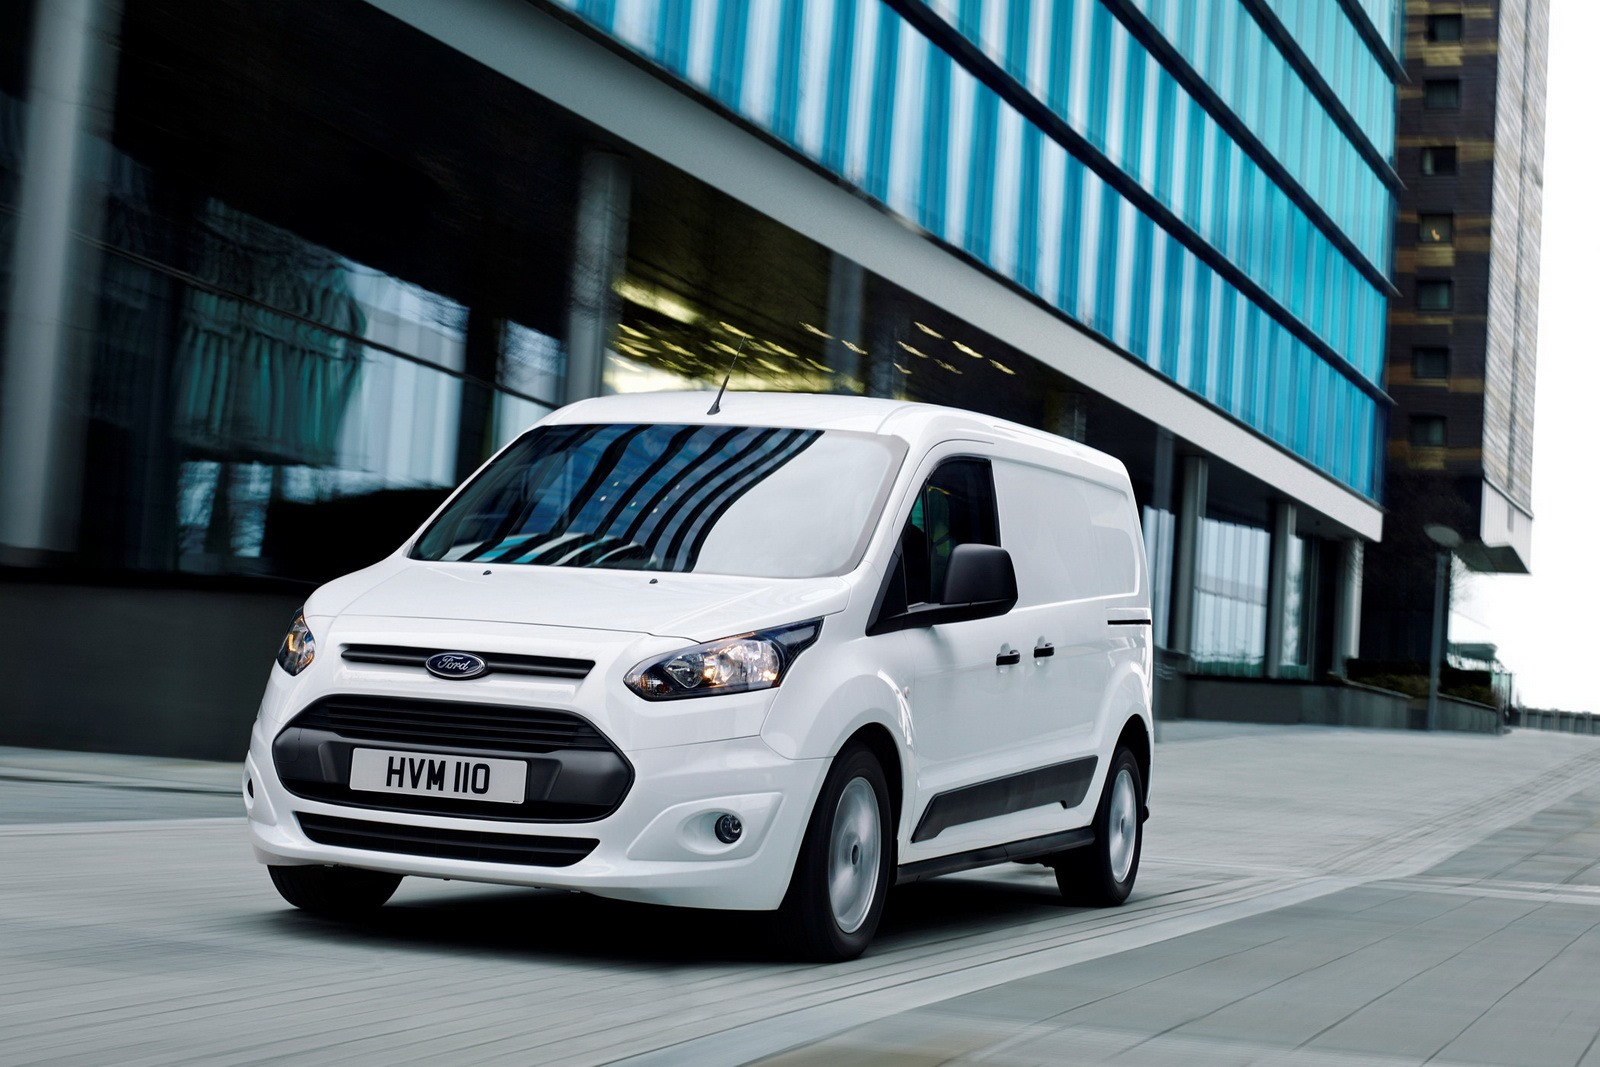 Ford. Ford Transit Connect 2015 Engine, Interior, Price, Review